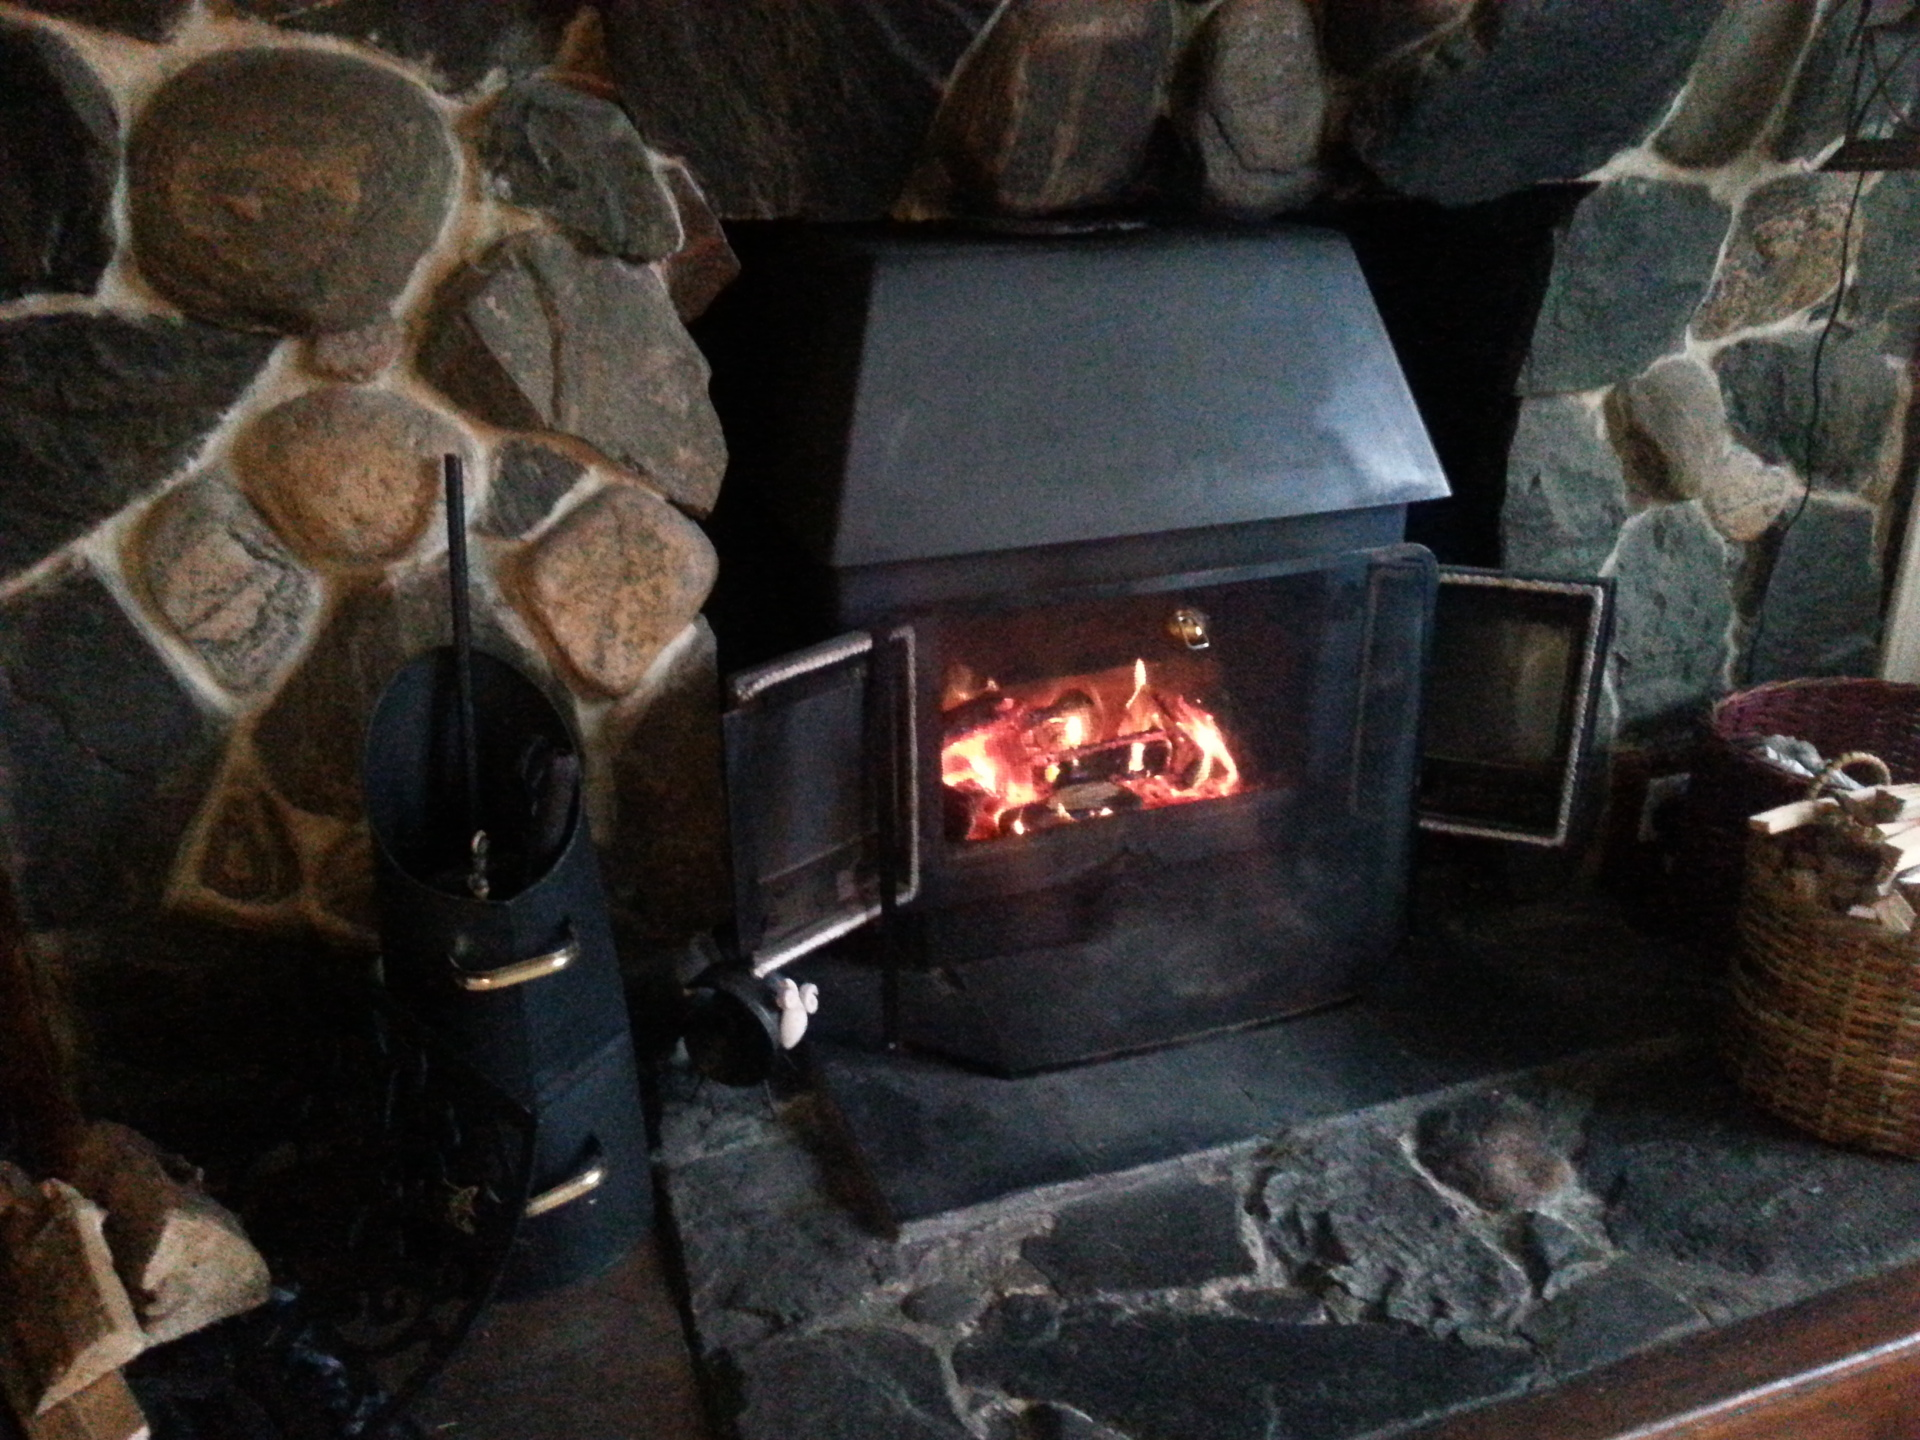 Get warm and snug in front of the fire.